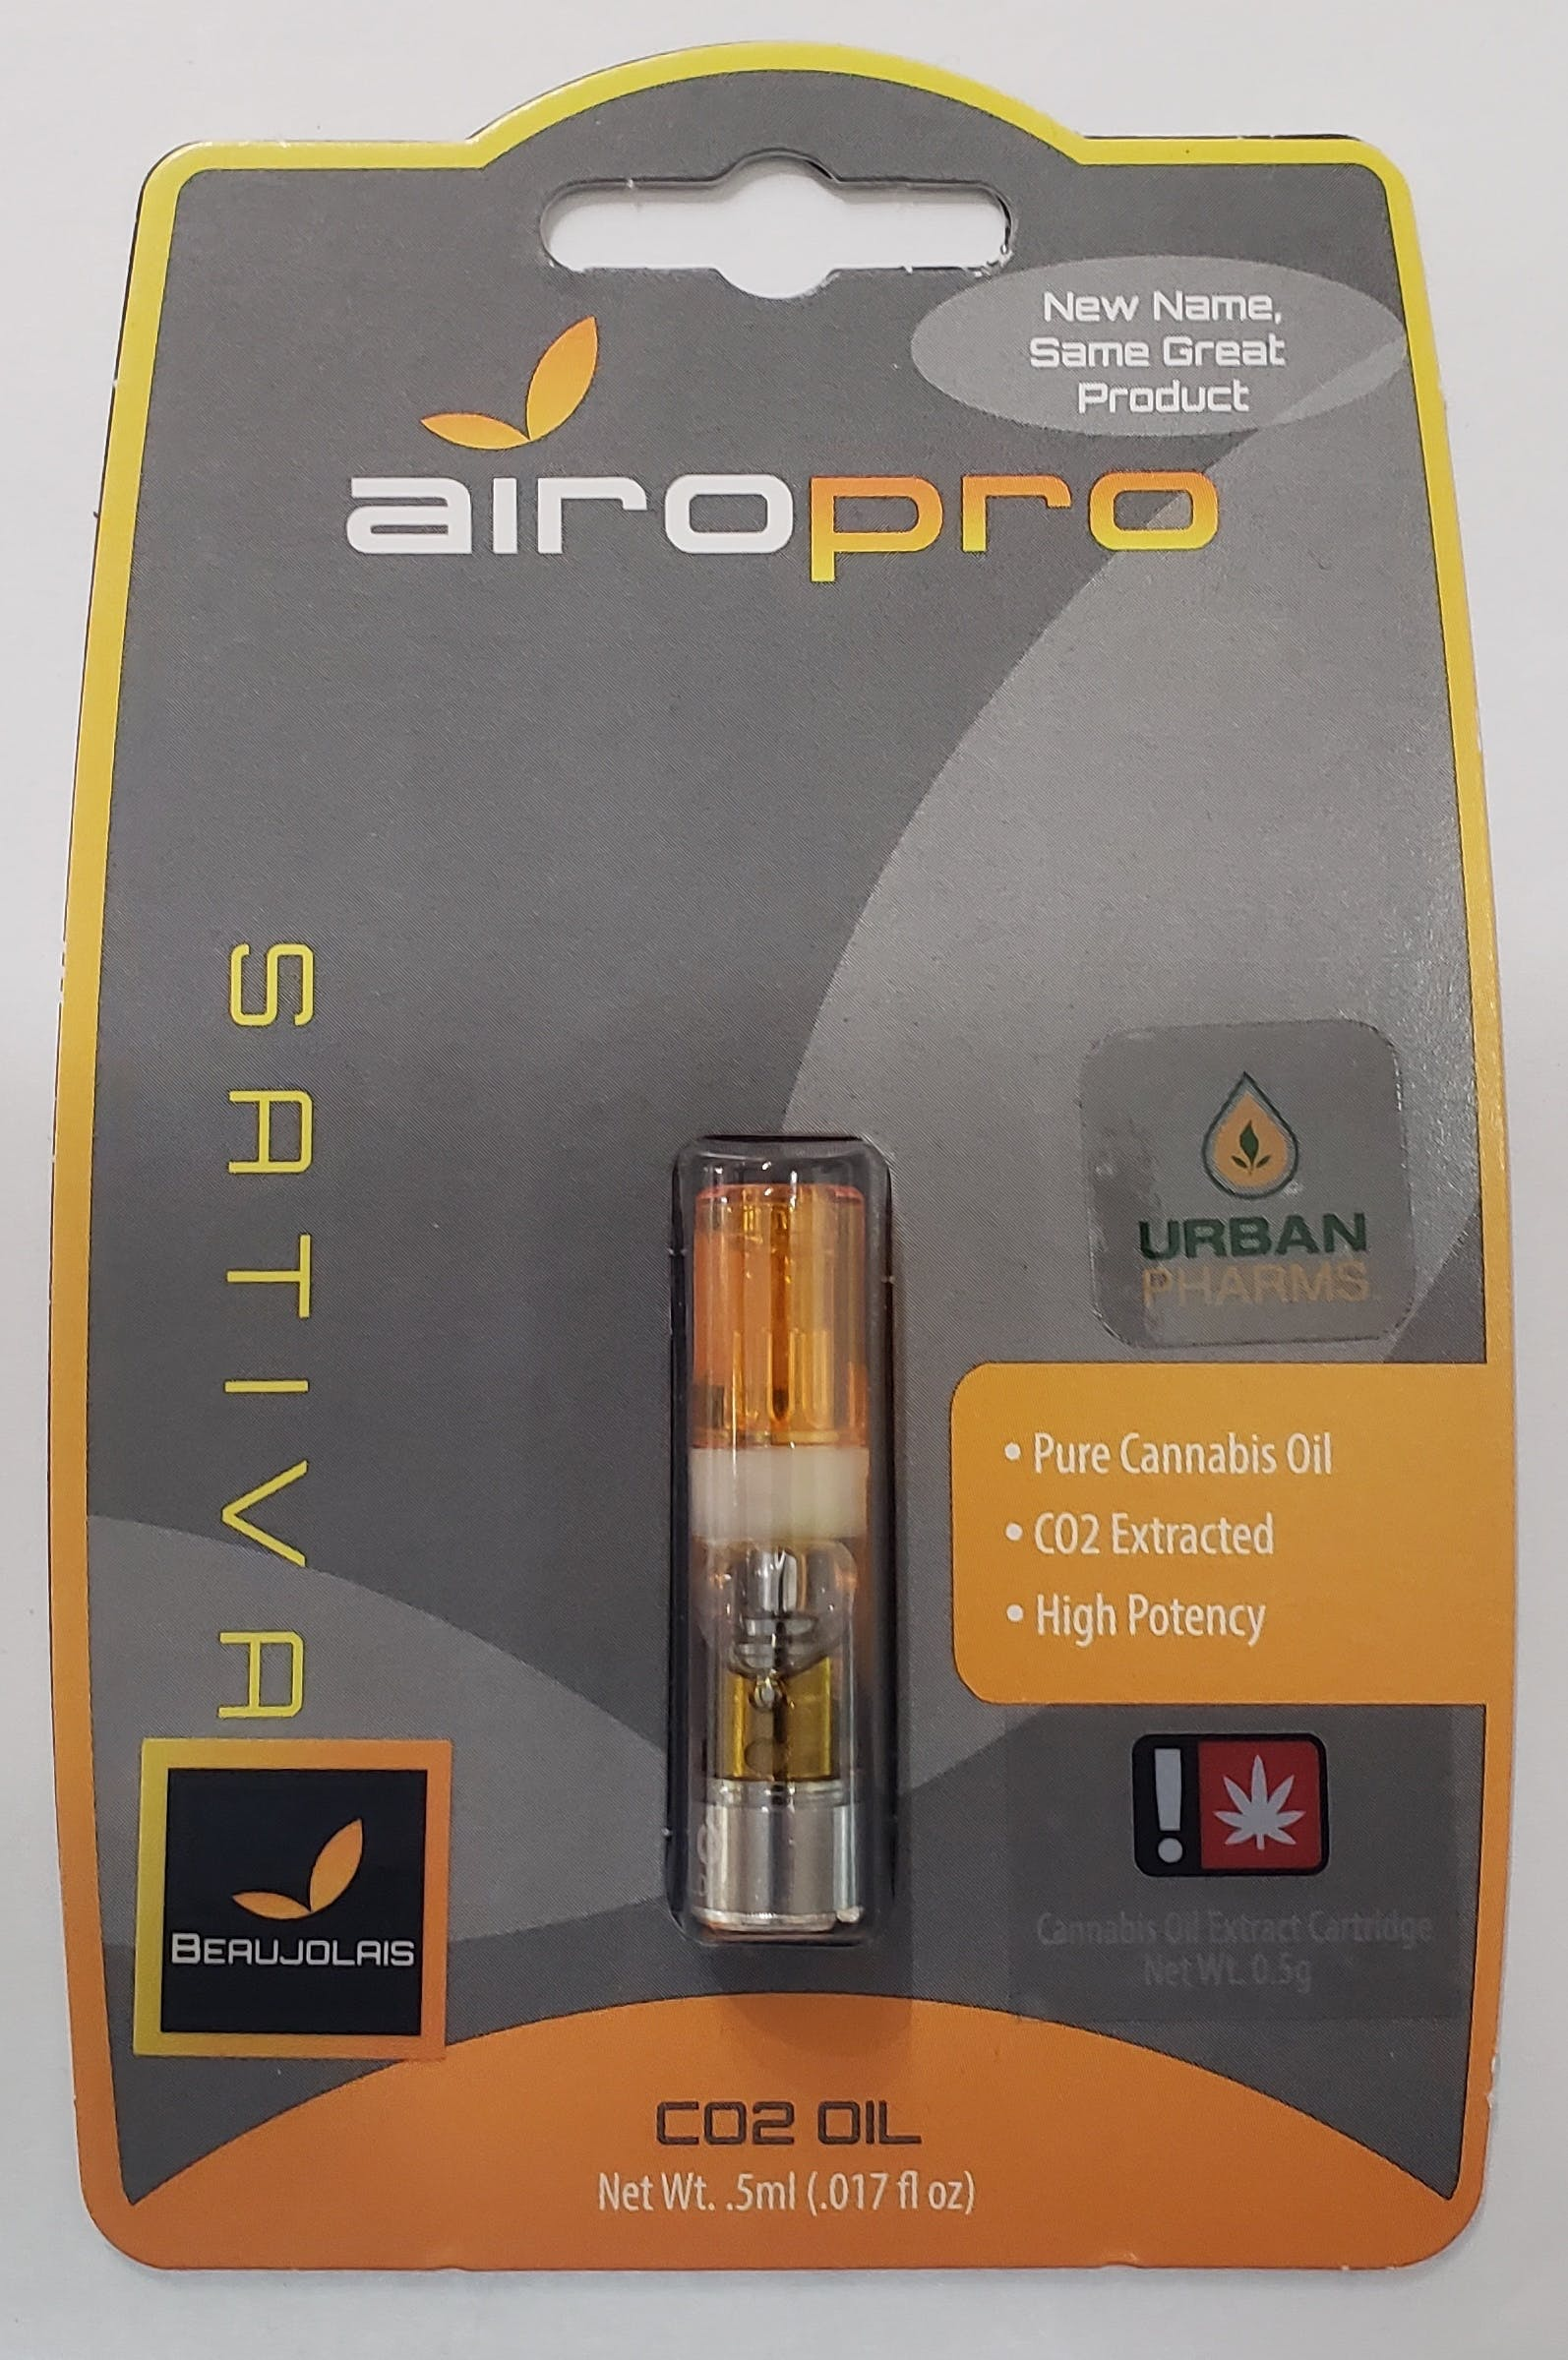 concentrate-airpro-0-5-s-beaujolais